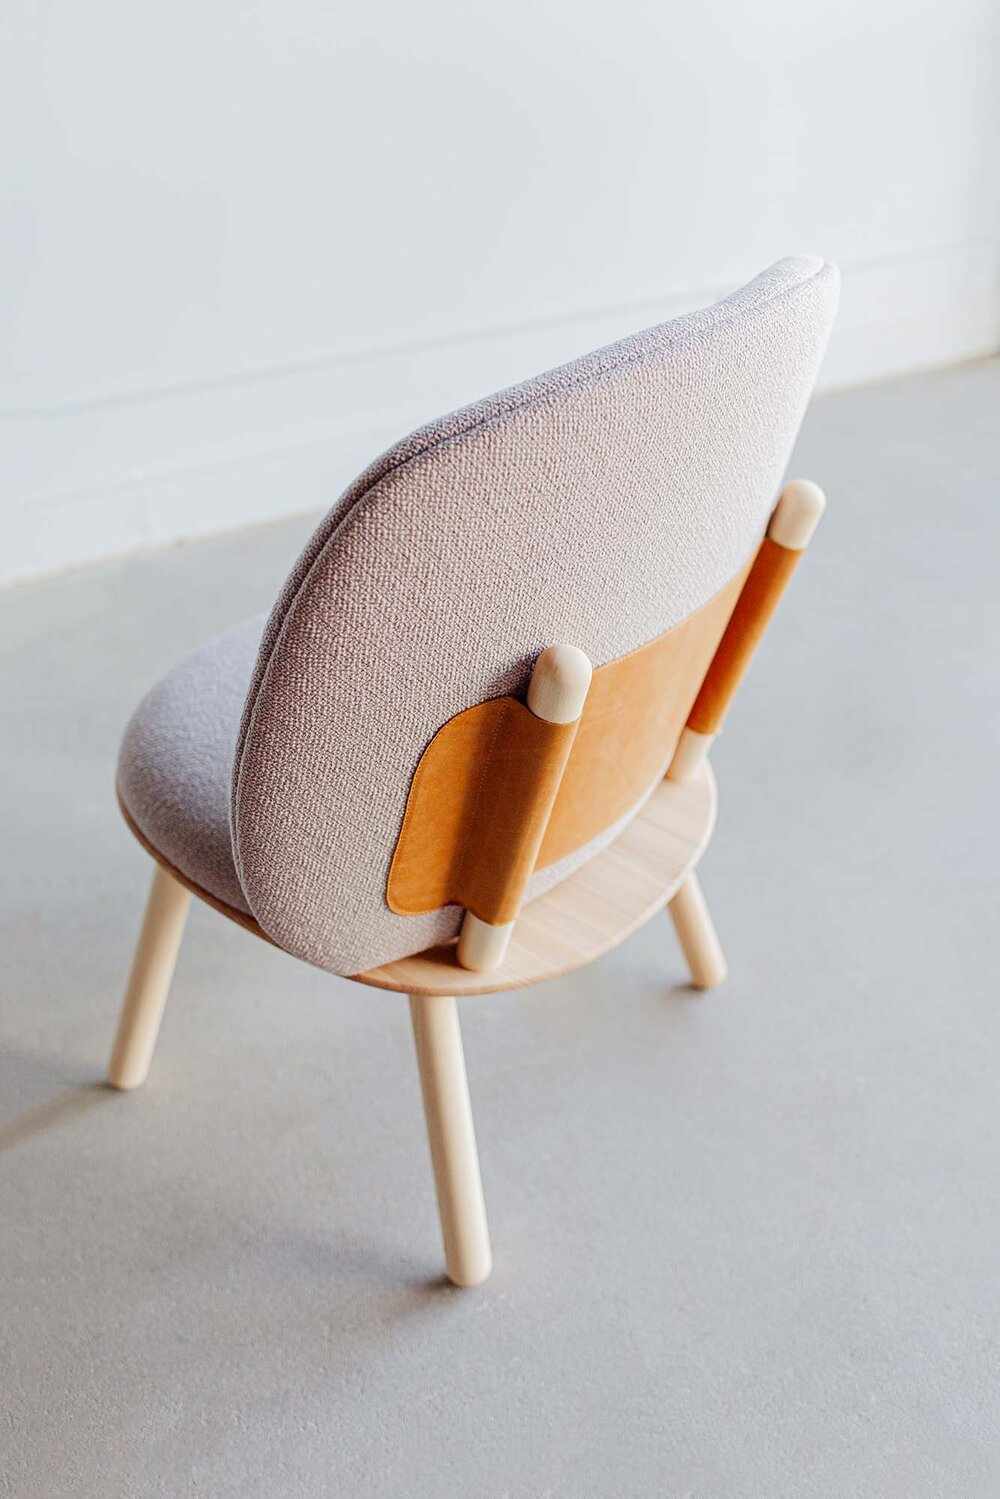 Fauteuil Naïve Low Chair en camira au design scandinave par etc.etc. x Emko